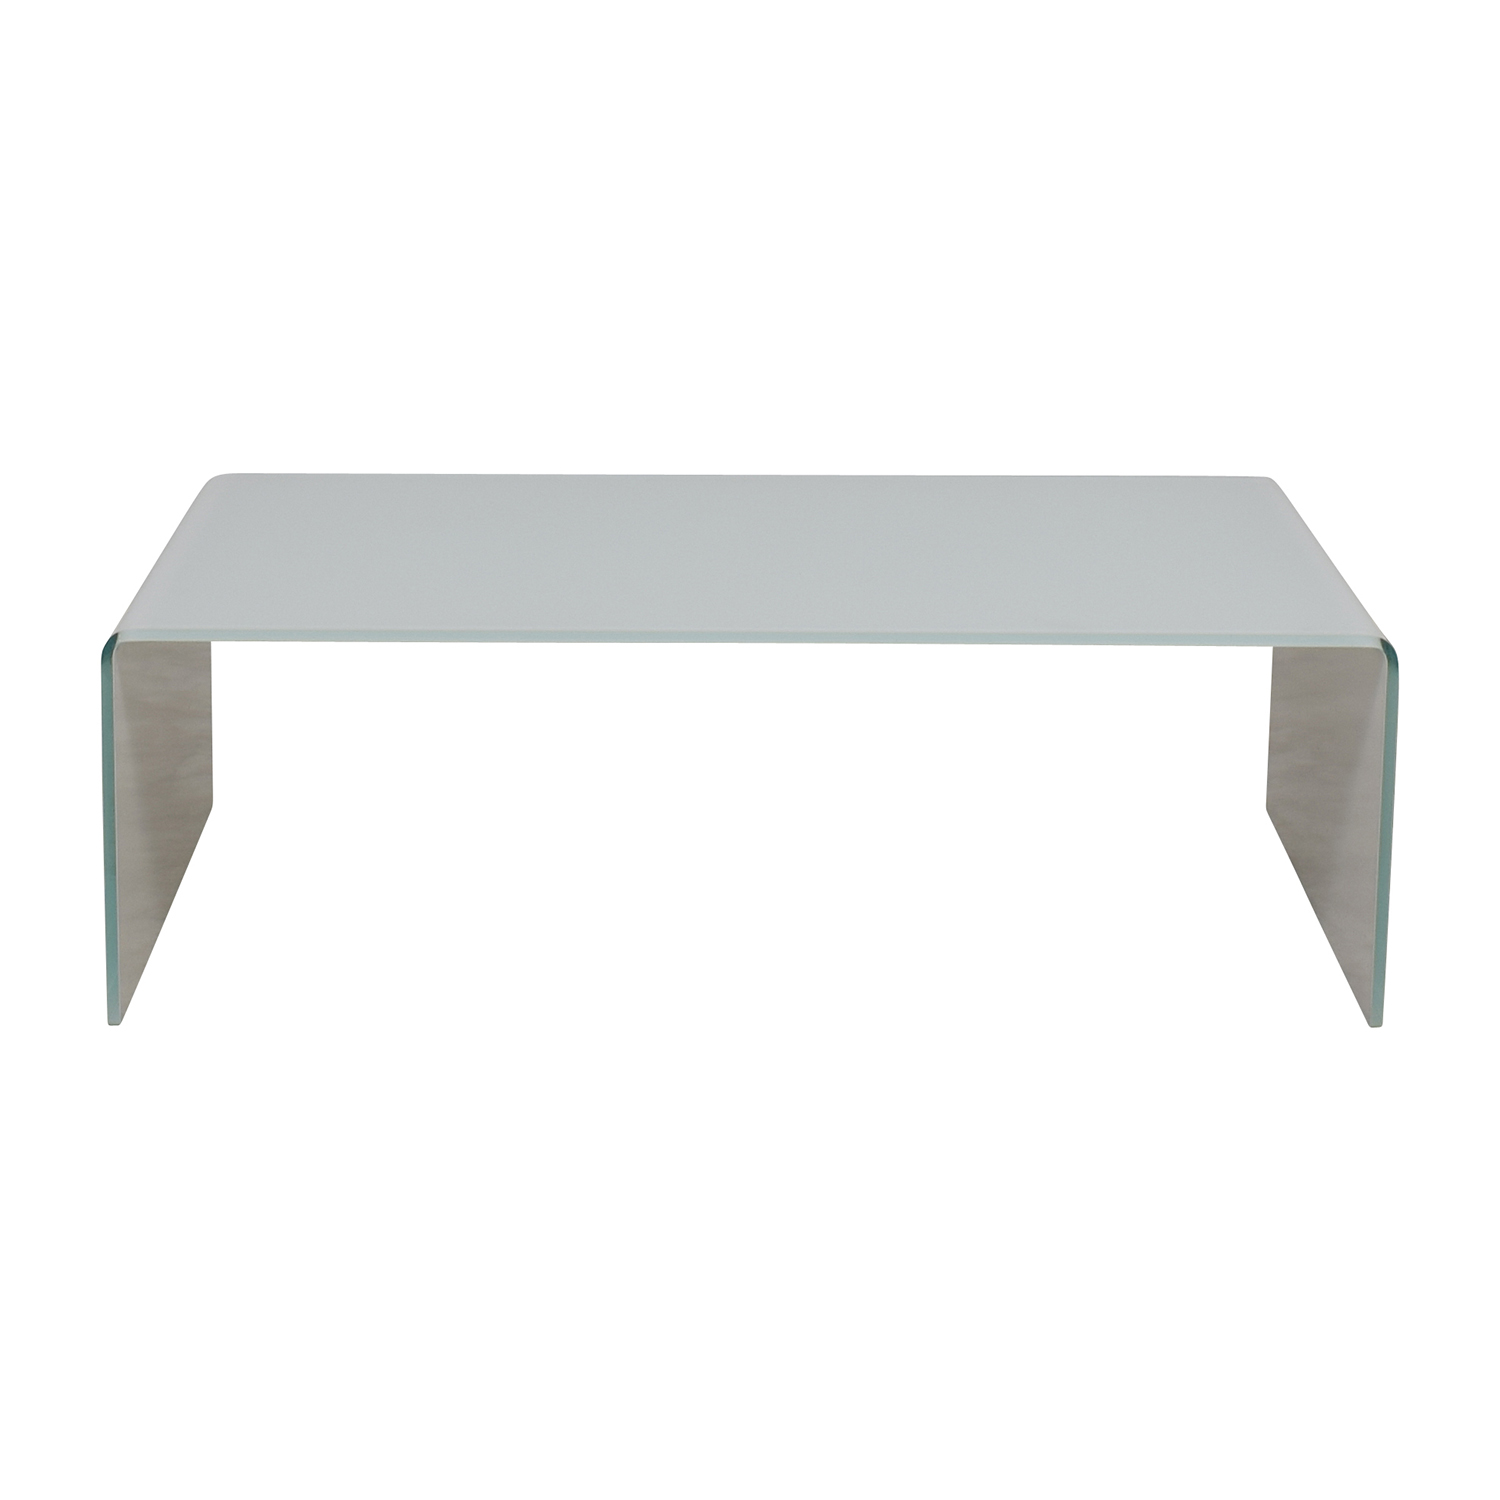 Miniforms Miniforms High-End Curvo White Glass Table on sale